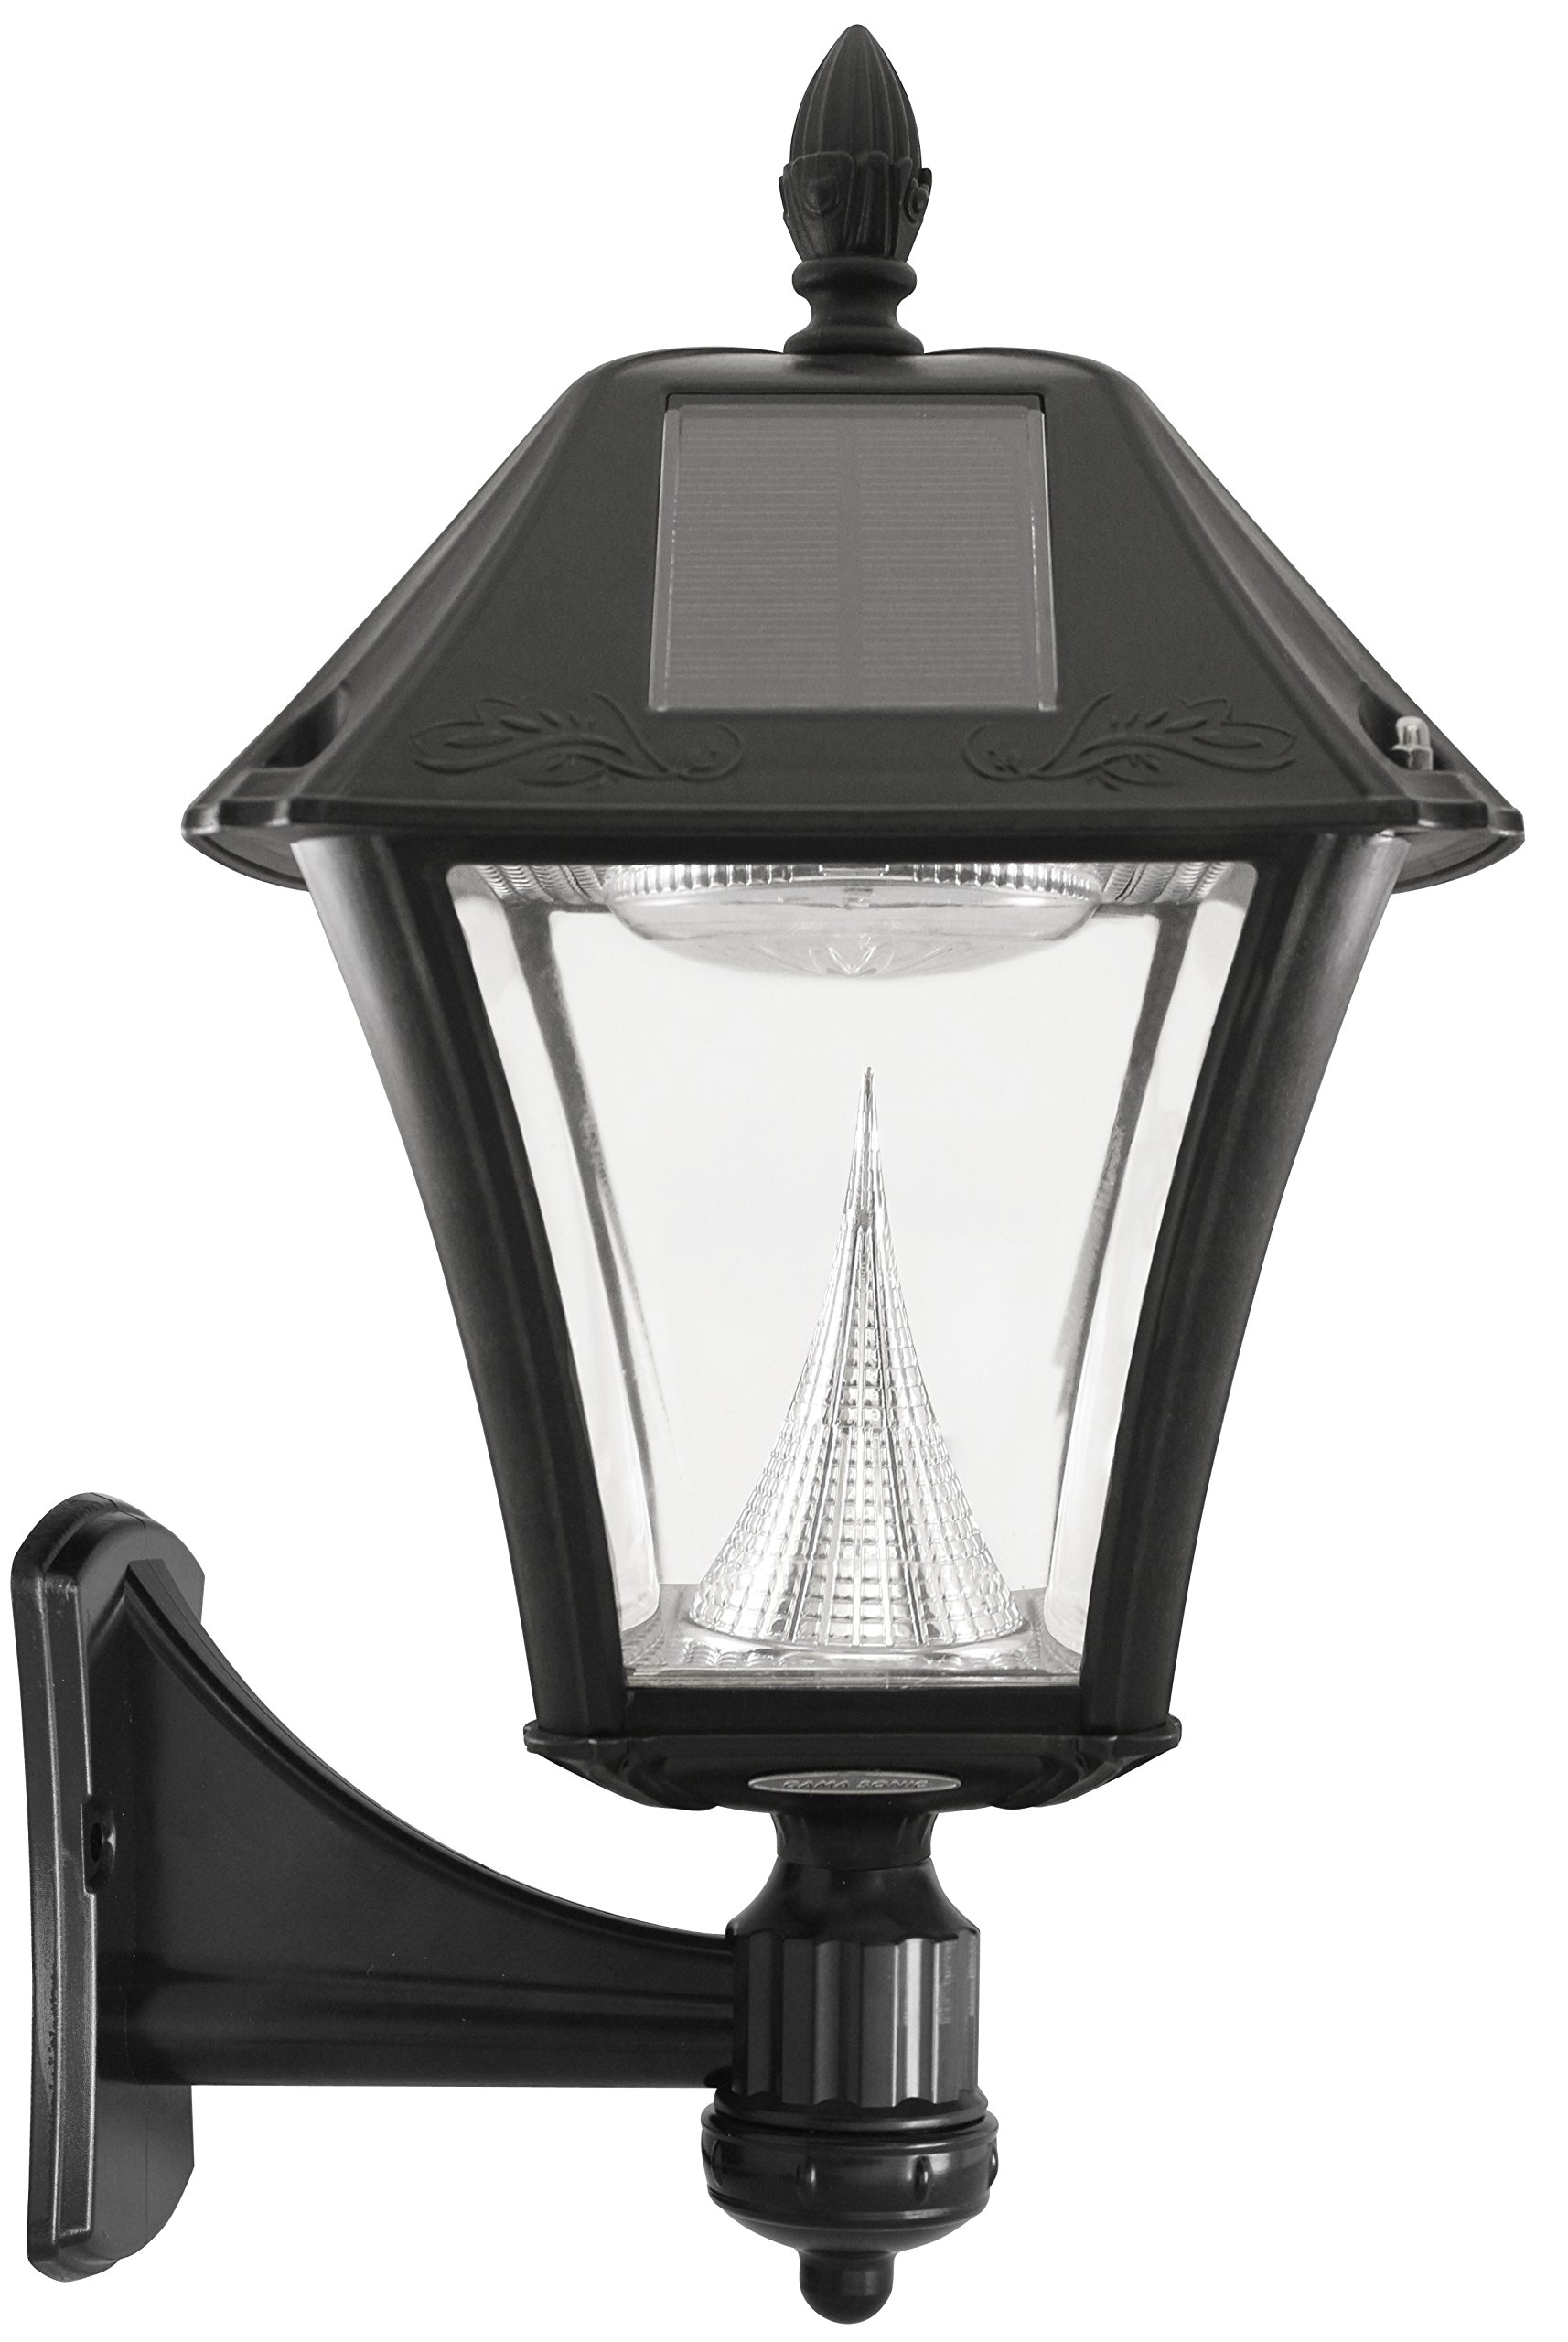 gama sonic baytown ii solar outdoor led light fixture pole post wall mount kit 853153005336 ebay. Black Bedroom Furniture Sets. Home Design Ideas